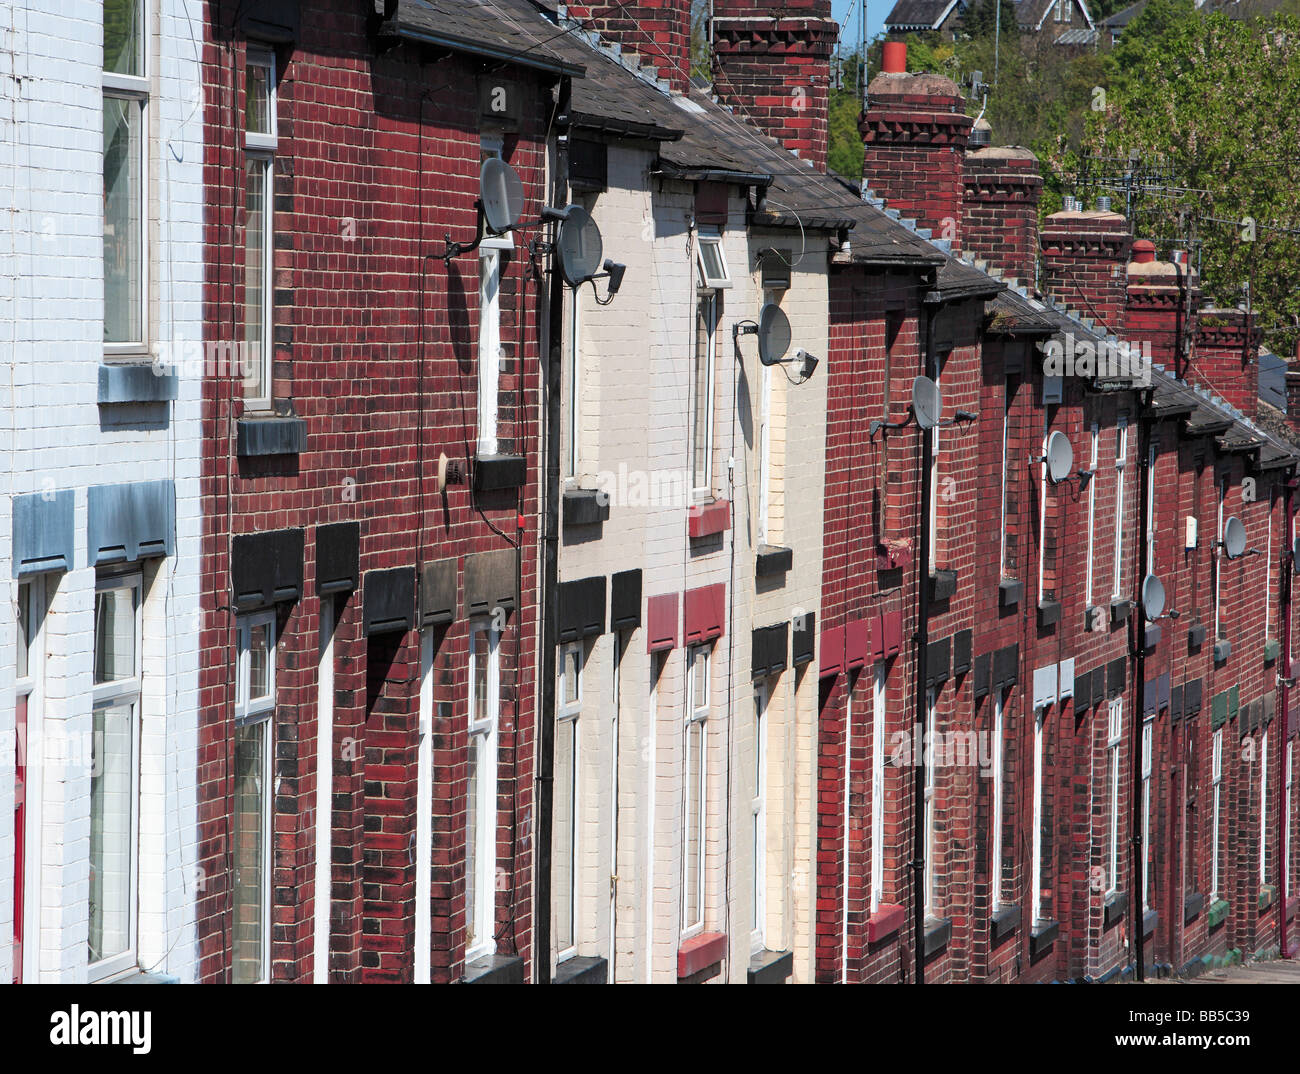 Terraced Houses - Stock Image